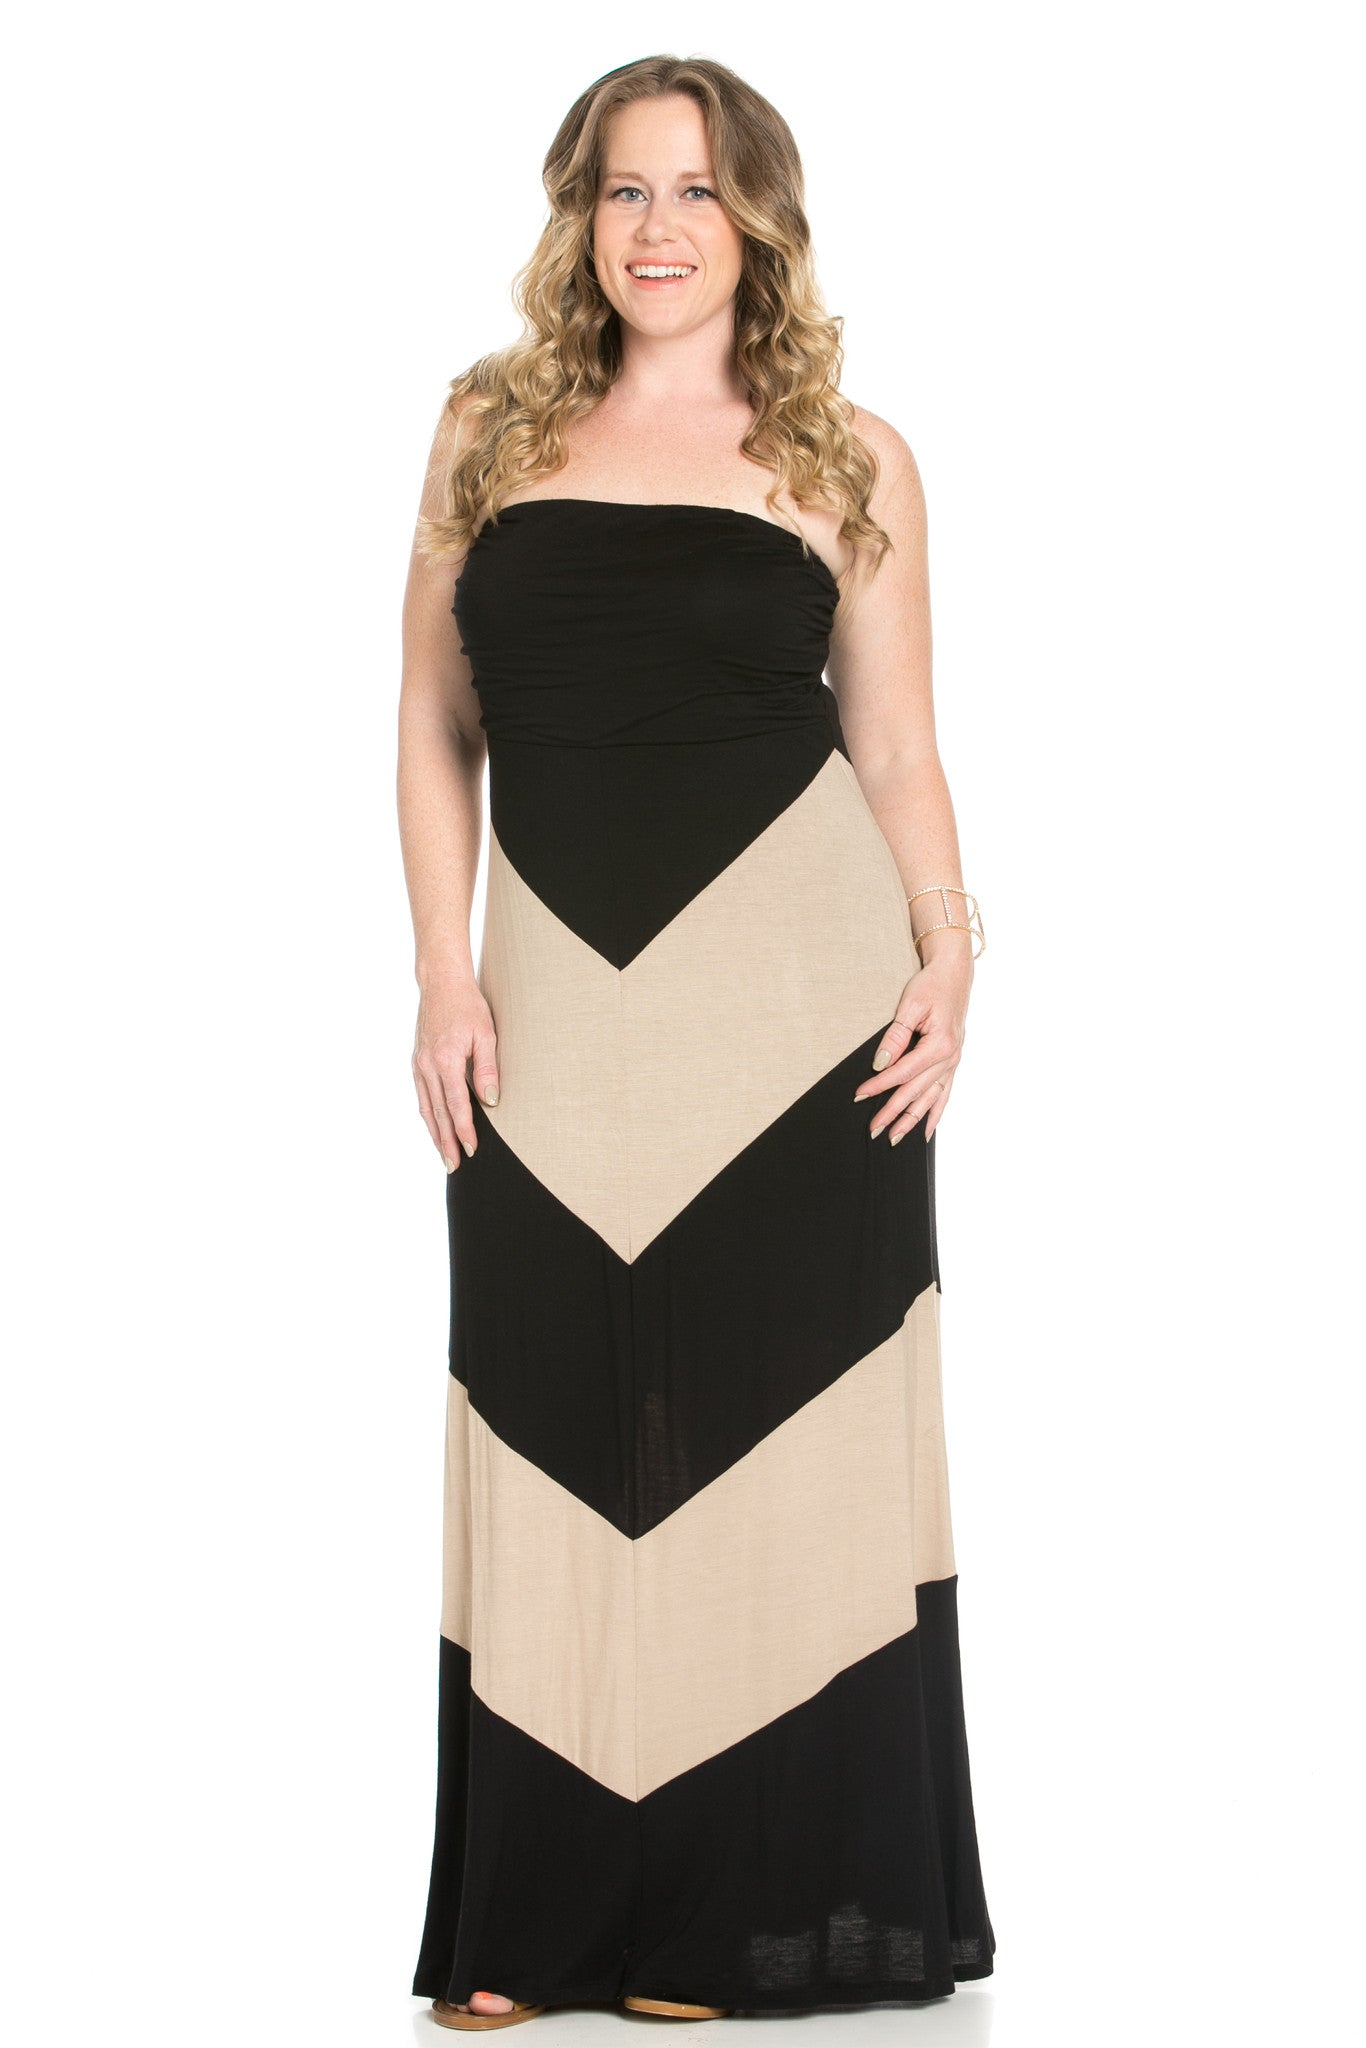 Strapless Long tube Dress  Black/Taupe Cause You're Chevron - Dresses - My Yuccie - 3